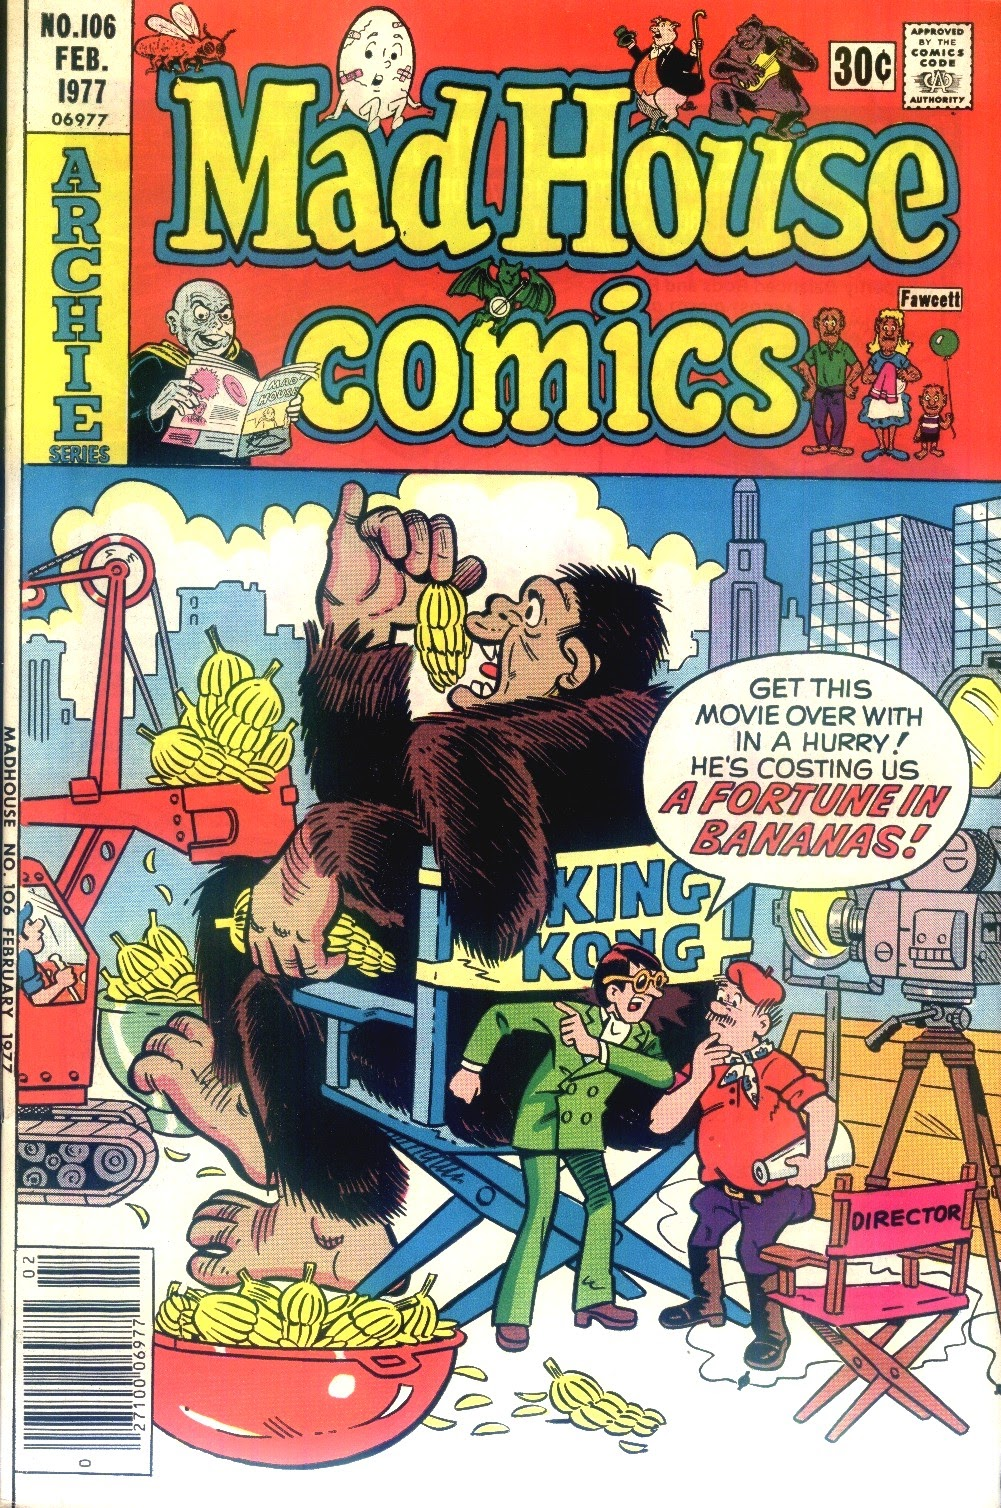 Read online Madhouse Comics comic -  Issue #106 - 1